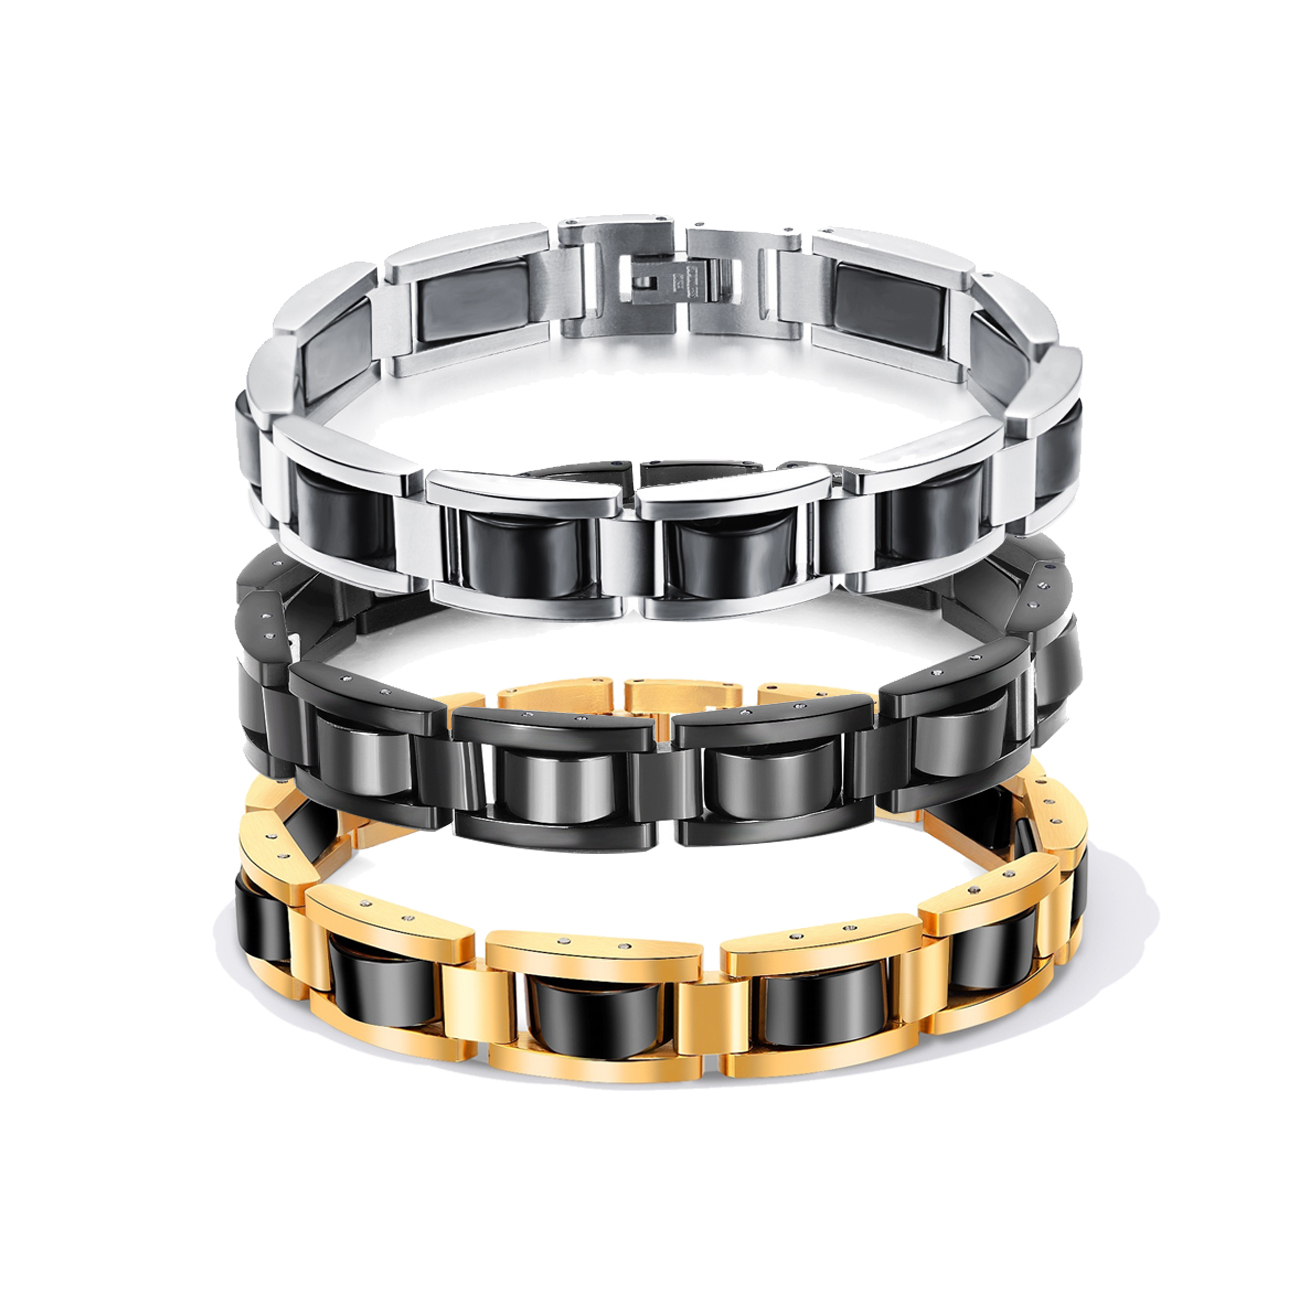 Bike Chain Mens Fashion Health Energy Magnetic Bracelet Bangle 316L Stainless Steel Health Care Bracelet & Bangle for MenBike Chain Mens Fashion Health Energy Magnetic Bracelet Bangle 316L Stainless Steel Health Care Bracelet & Bangle for Men